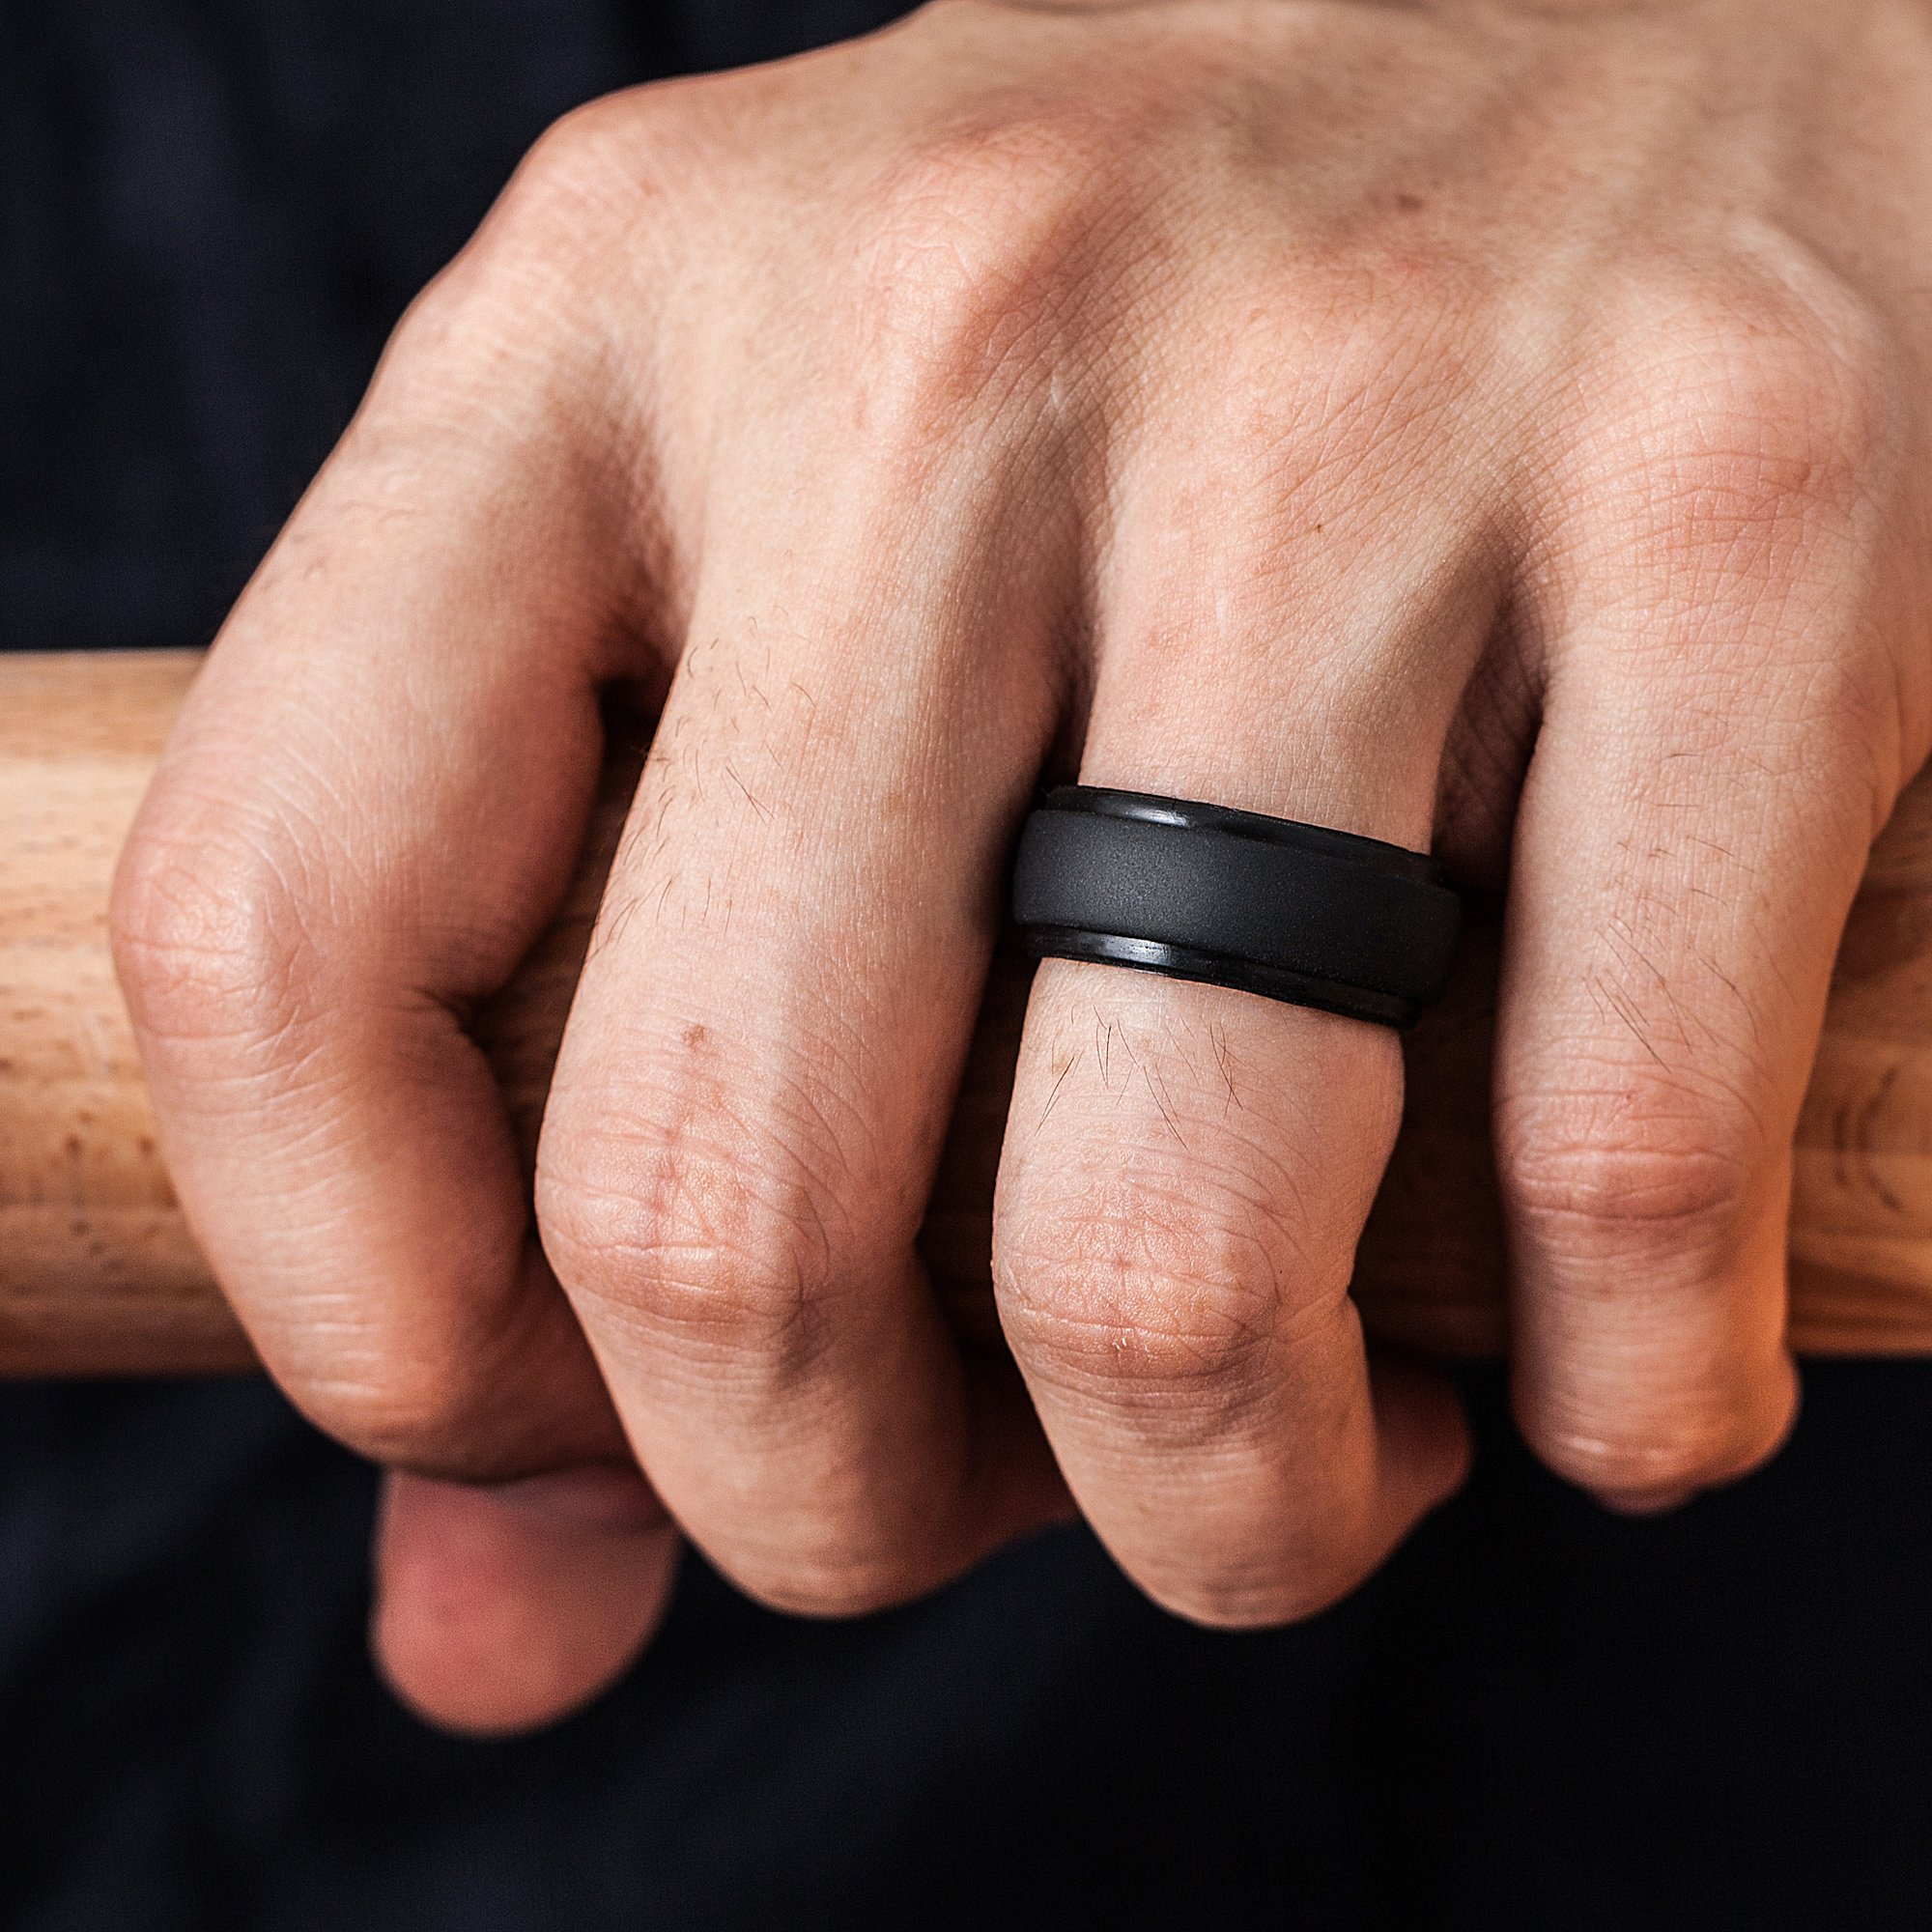 Rubber Wedding Bands.Thunderfit Silicone Rings For Men 4 Pack Single Ring Step Edge Rubber Wedding Bands